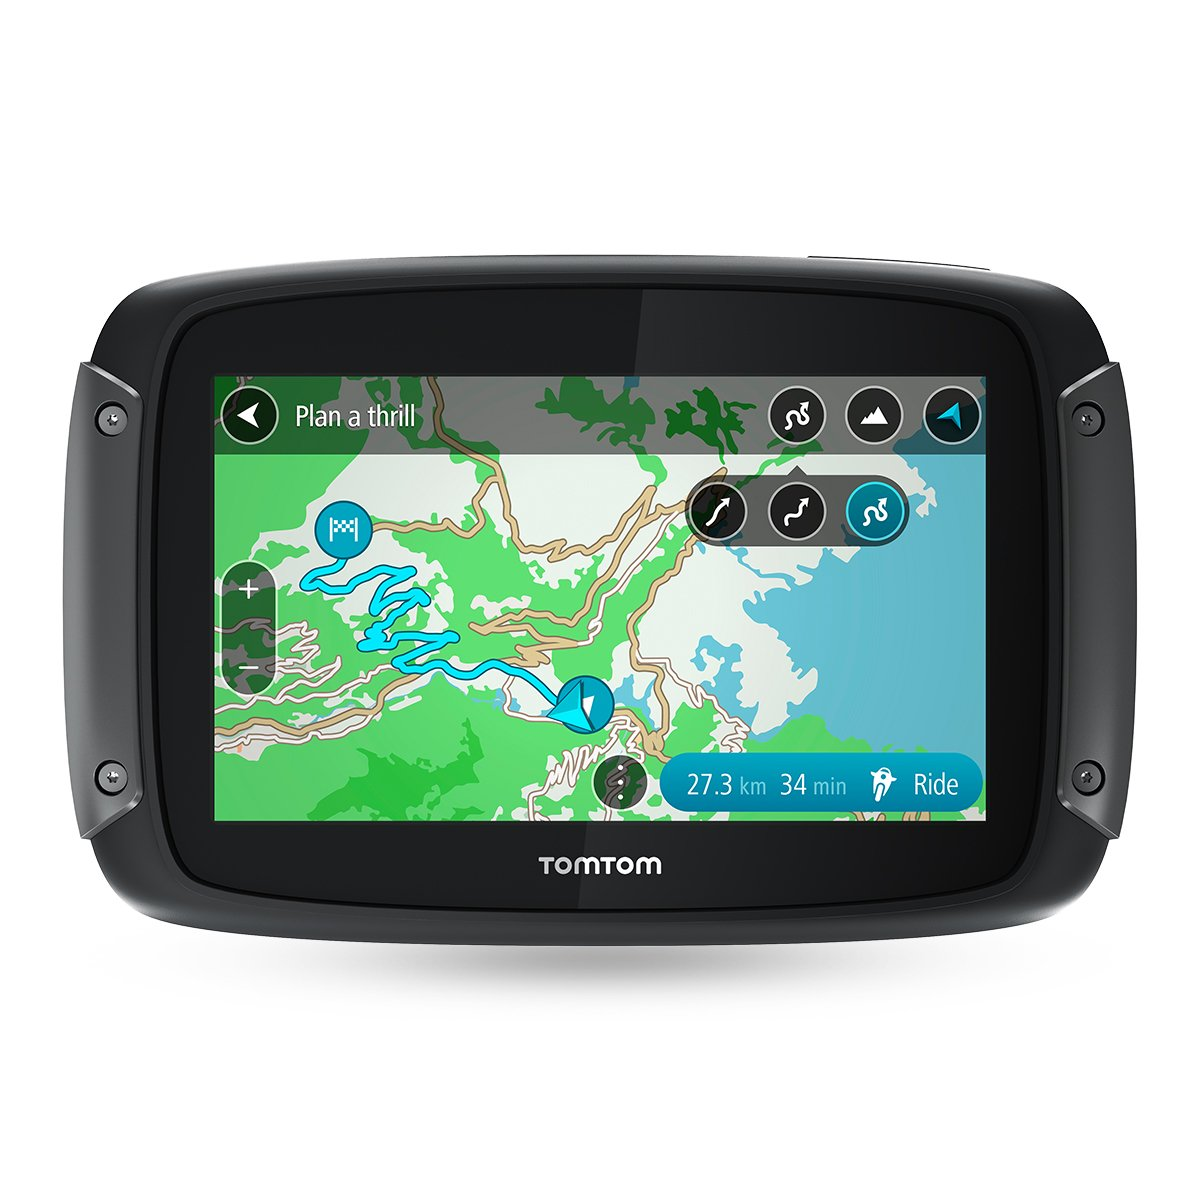 Tomtom Motorcycle Sat Nav Rider 500 43 Inches With Navigation Light Wiring For Dual Stationsnavlights001jpg Specific Winding And Hilly Roads Updates Via Wifi Compatible Siri Google Now